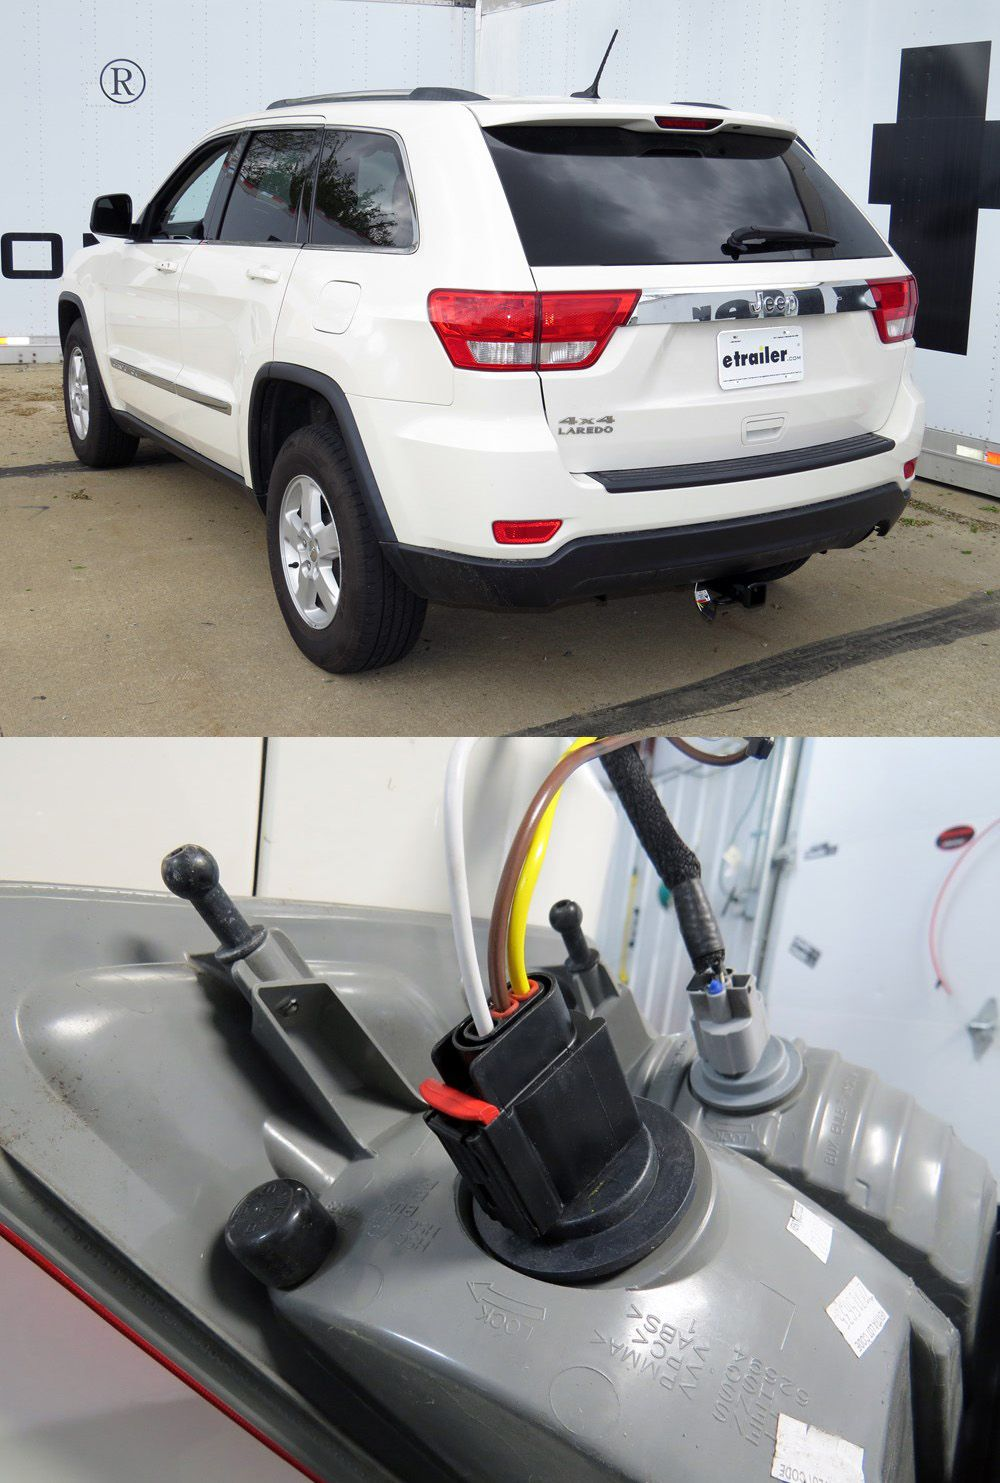 Tow ready custom fit vehicle wiring for the Grand Cherokee by Jeep. Watch  the video of the quick and easy installation. Provides a 4-way flat trailer  ...